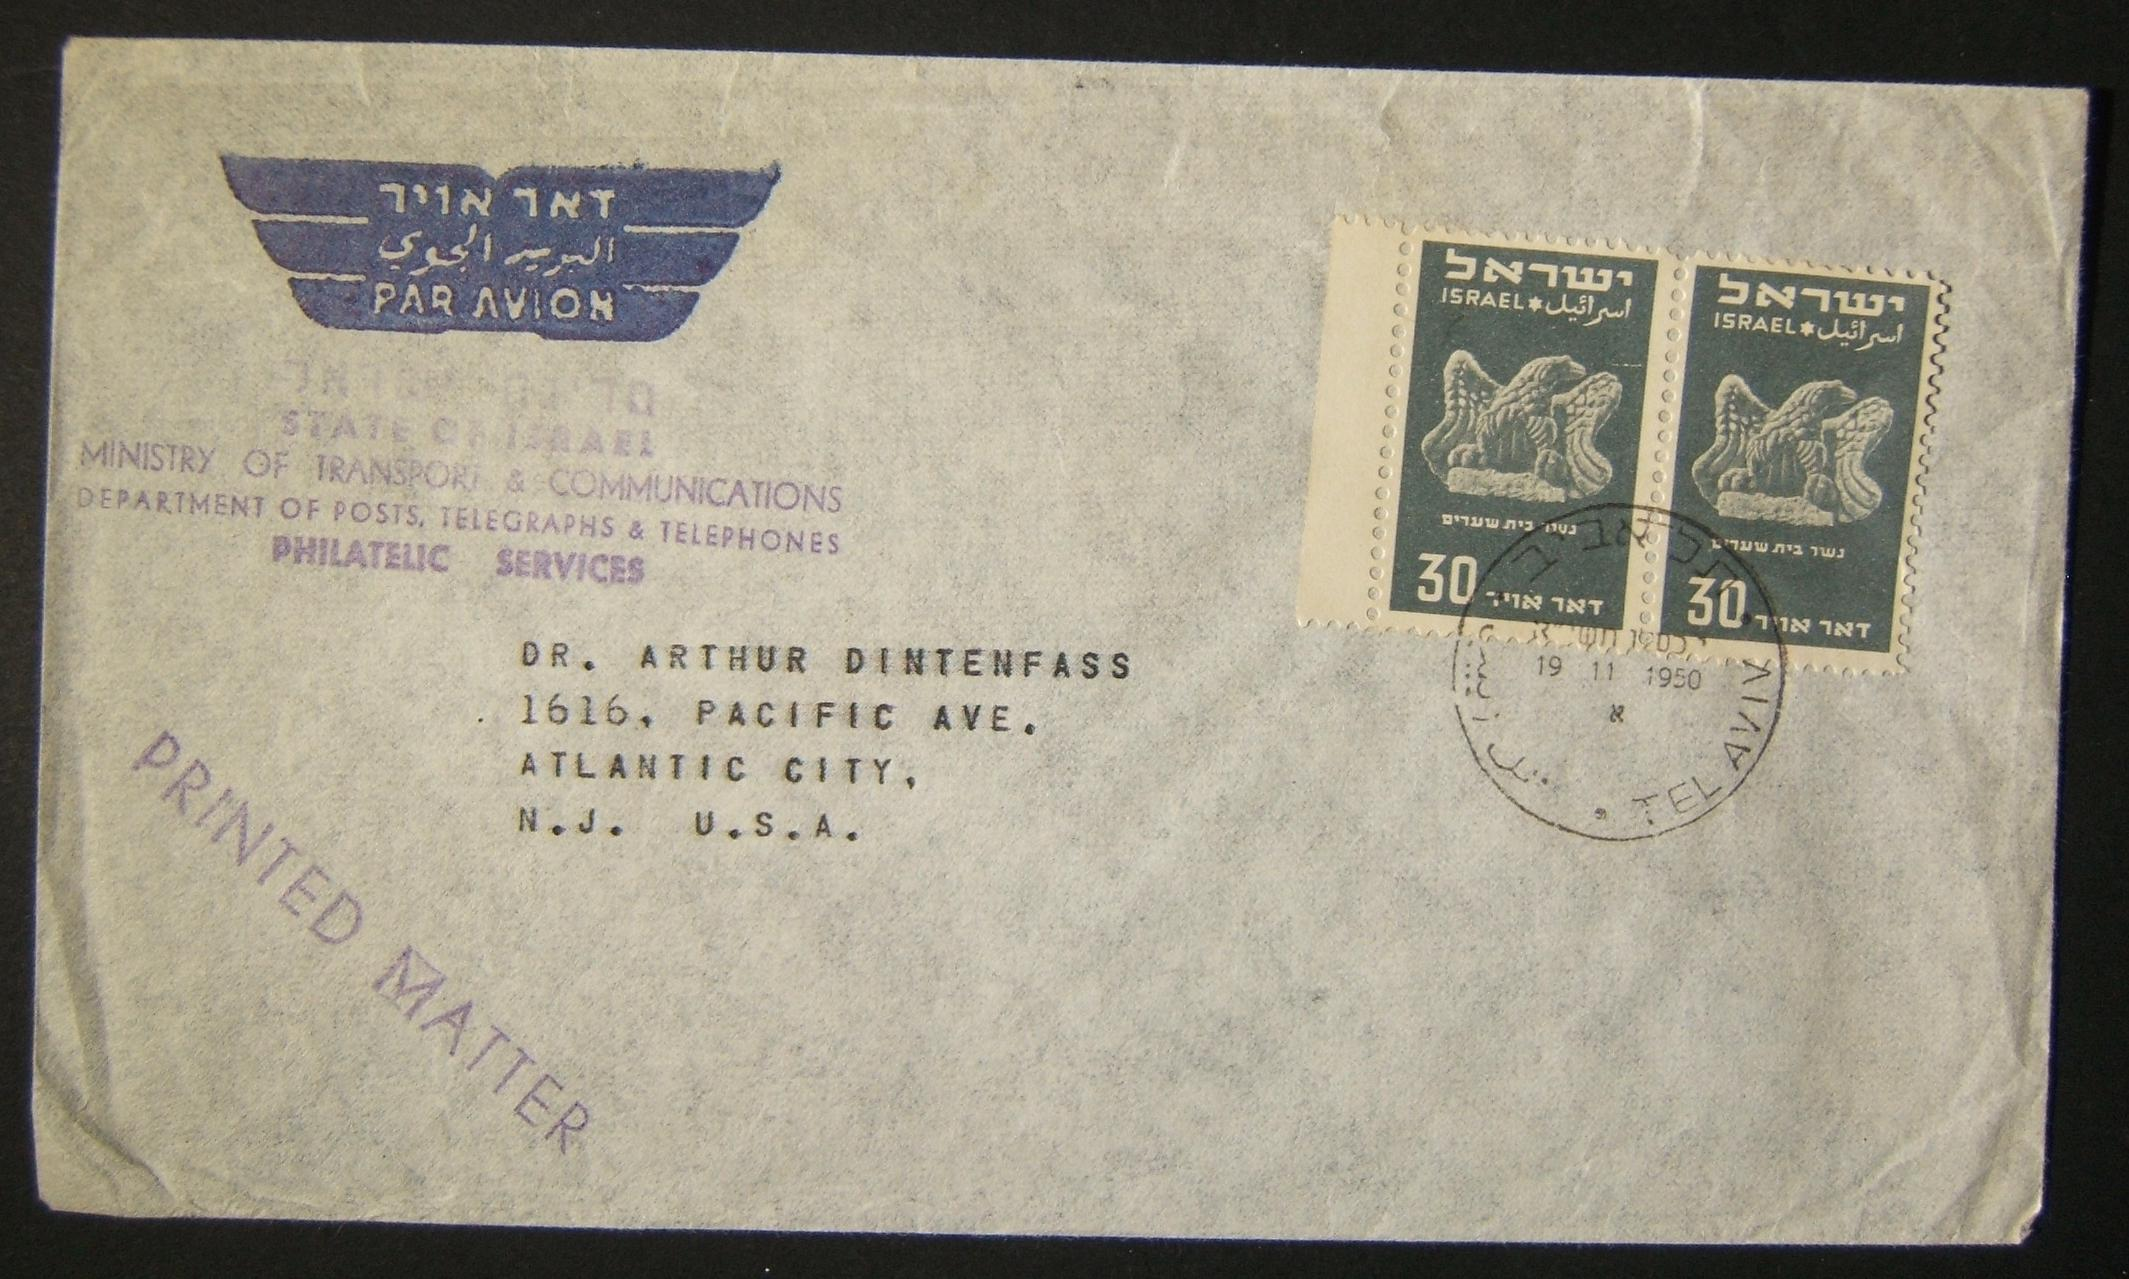 1950 1st airmail / PO's, rates & routes: 19-11-1950 government airmail stationary printed matter cover ex TLV (Philatelic Service) to NEW JERSEY franked 60pr at the FA-2a period pm